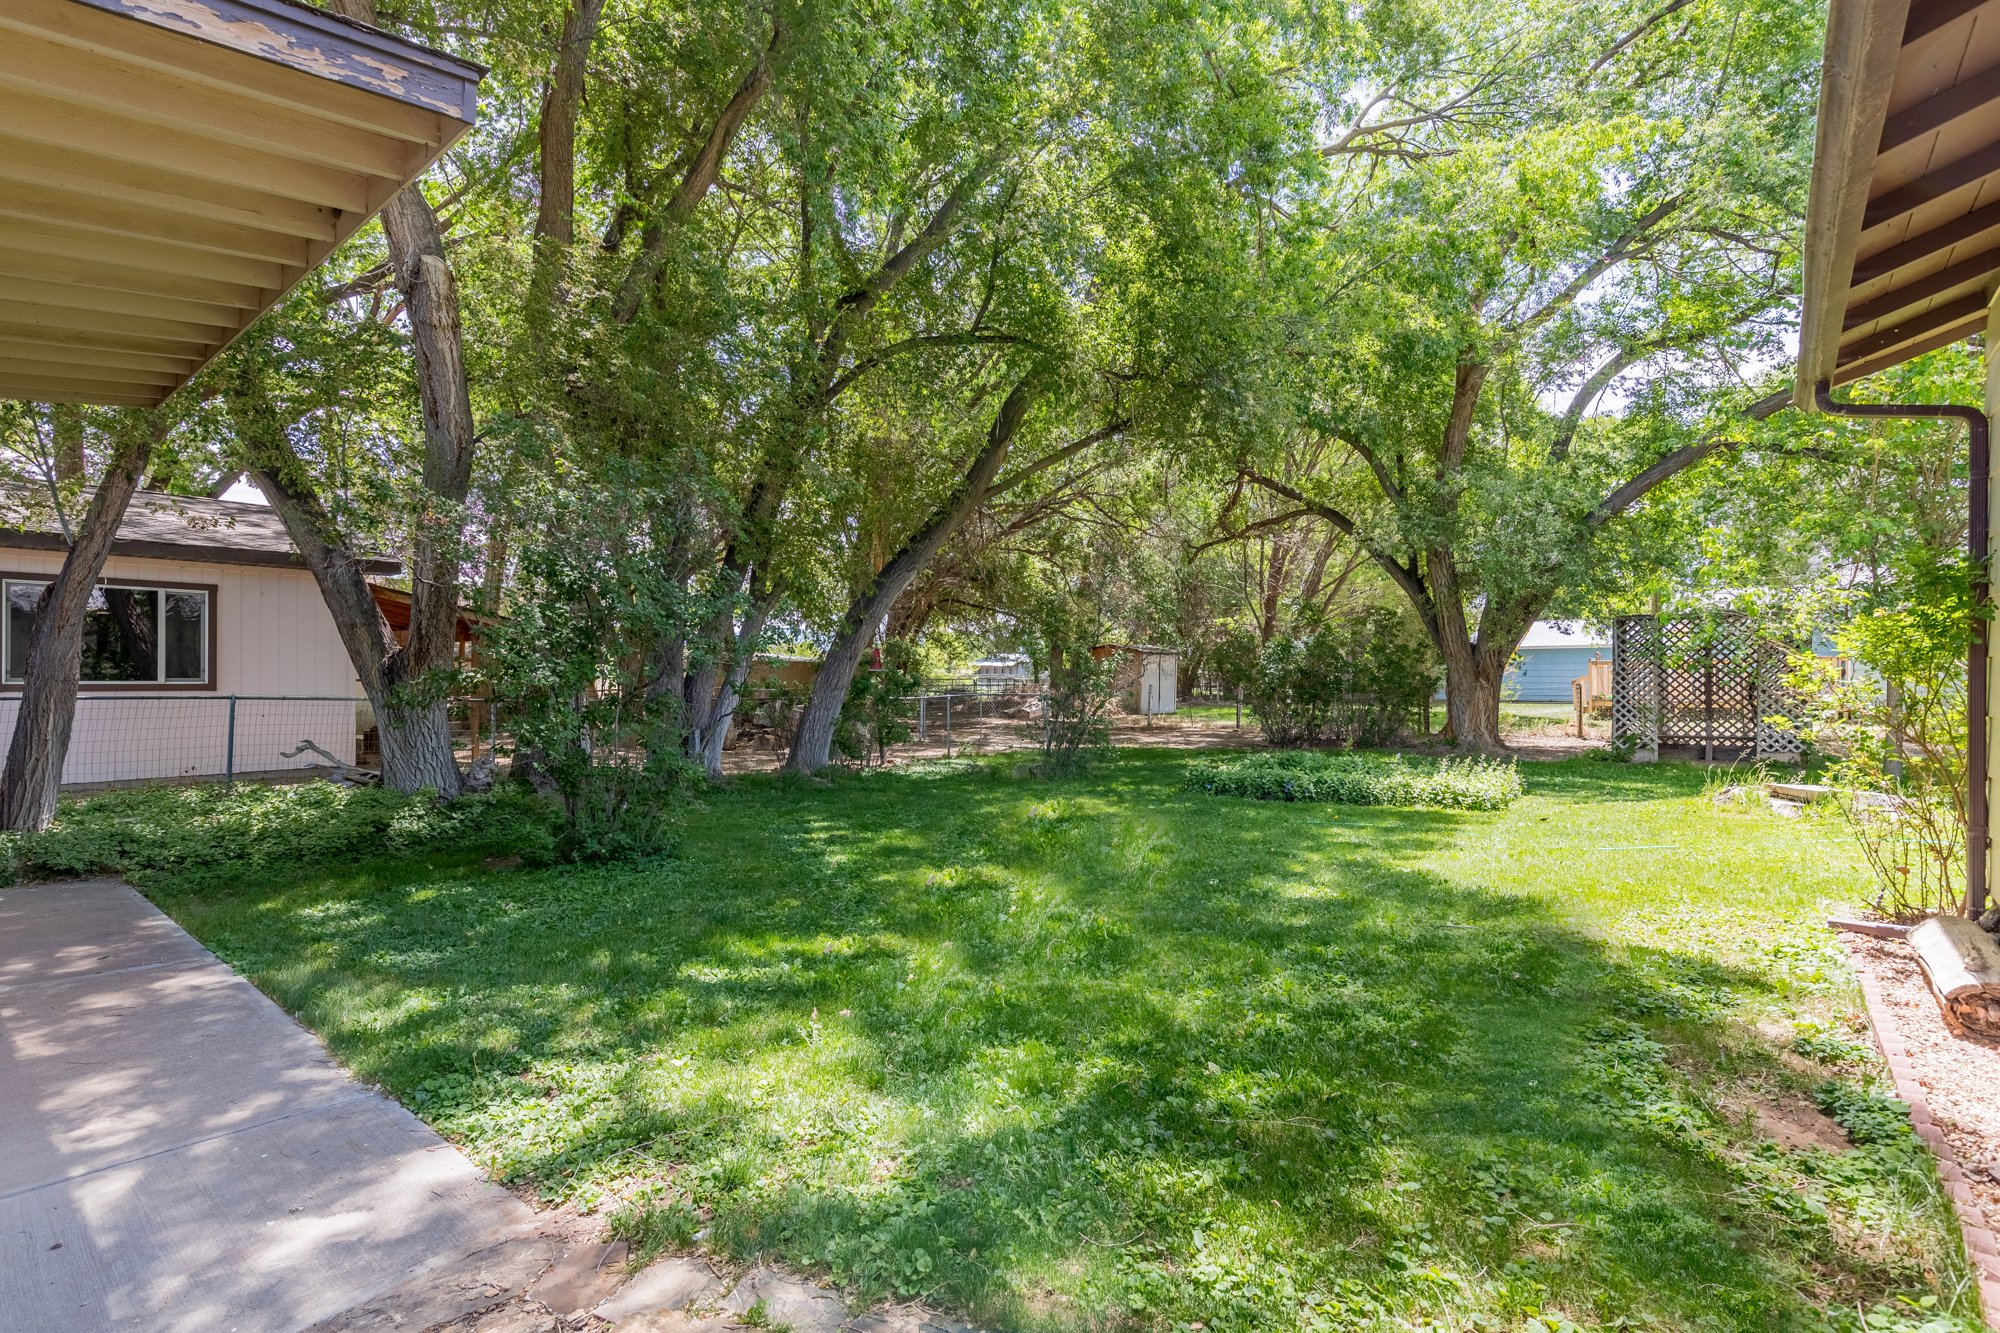 Back Yard with Mature Trees - 418 6400 Rd Montrose, CO 81403 - Atha Team Realty